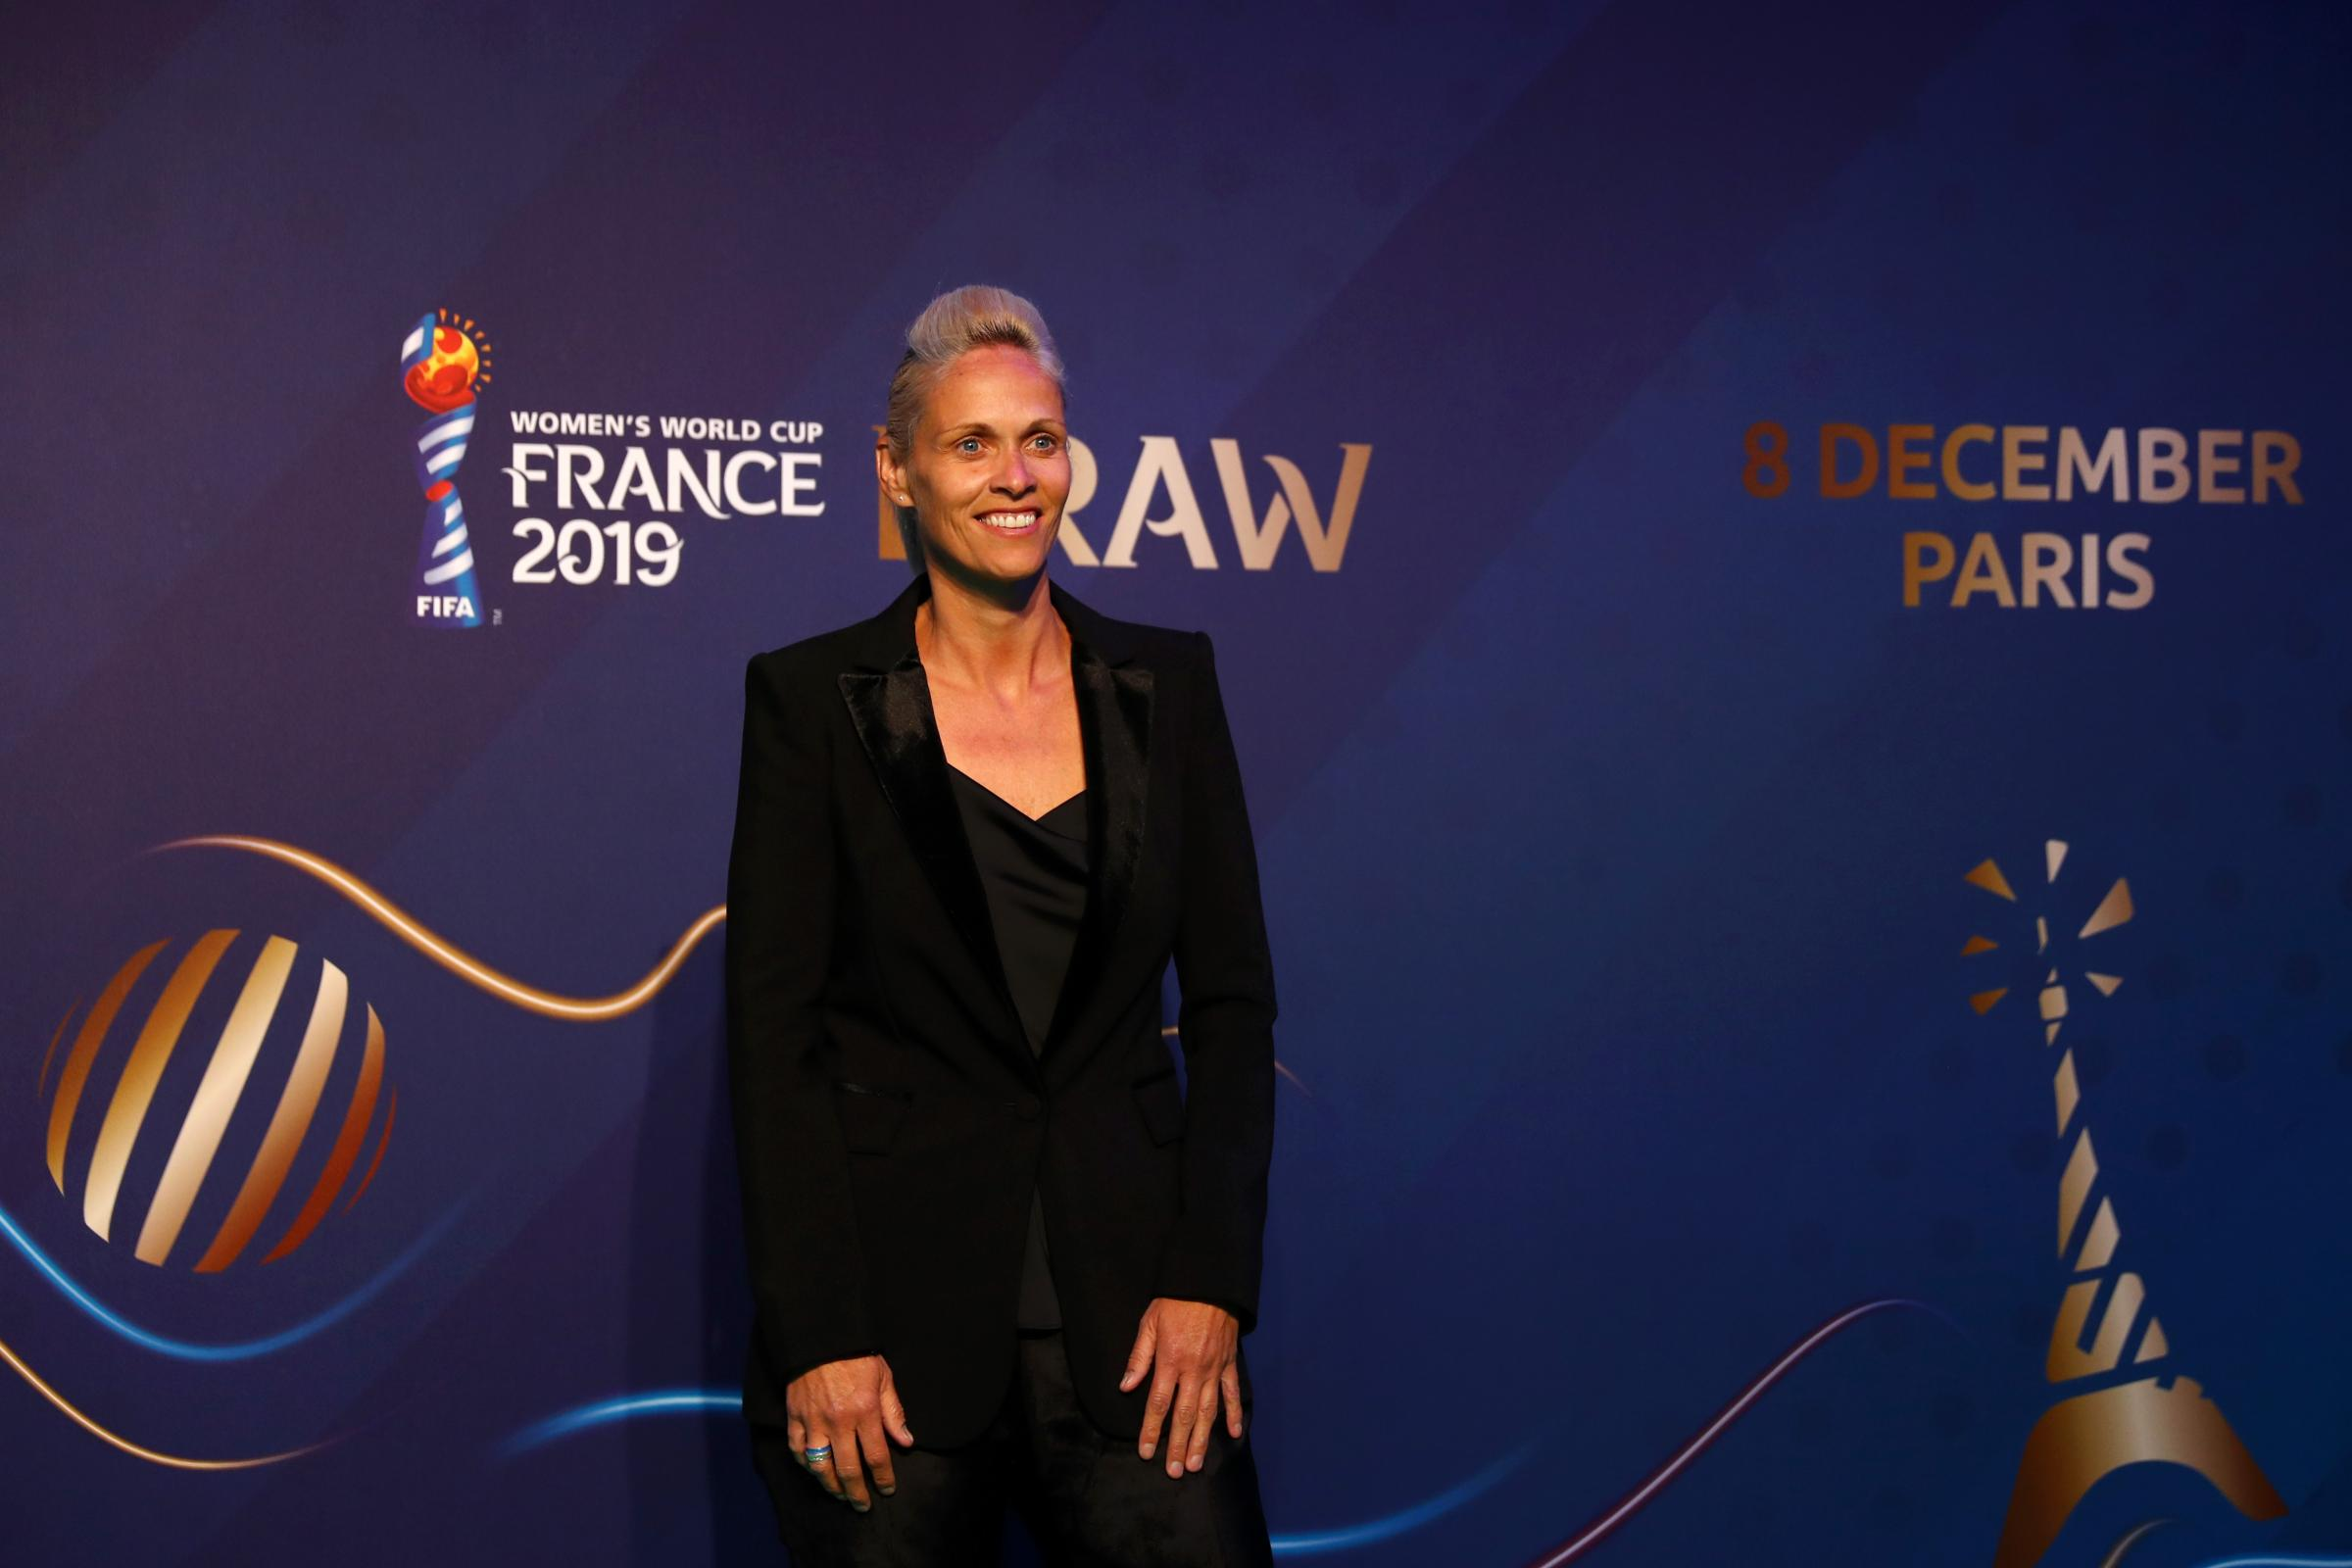 Scotland coach Shelley Kerr arrives for the World Cup draw